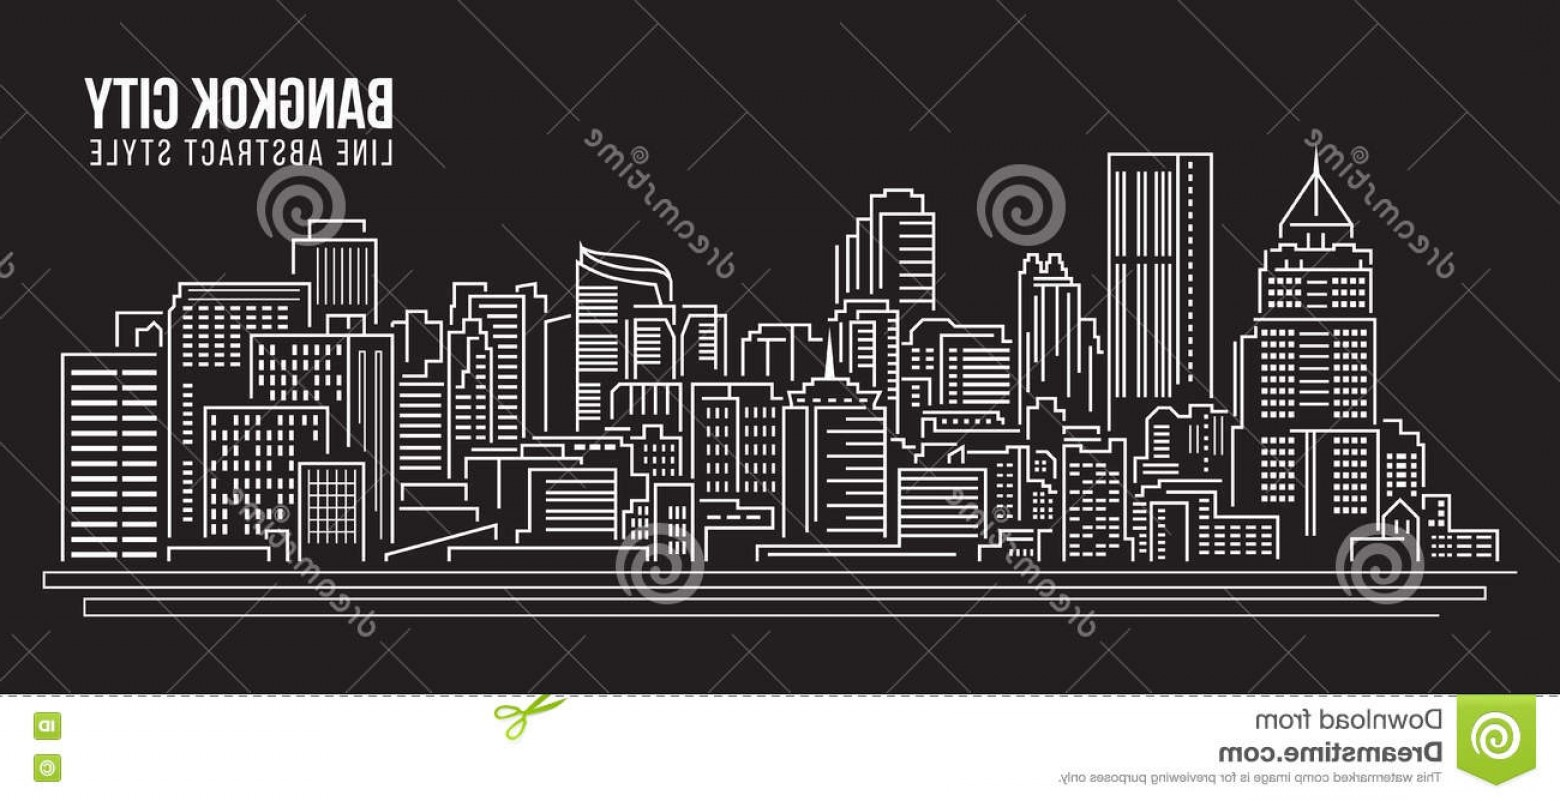 City Building Vector Free Download: Stock Illustration Cityscape Building Line Art Vector Illustration Design Bangkok City Image